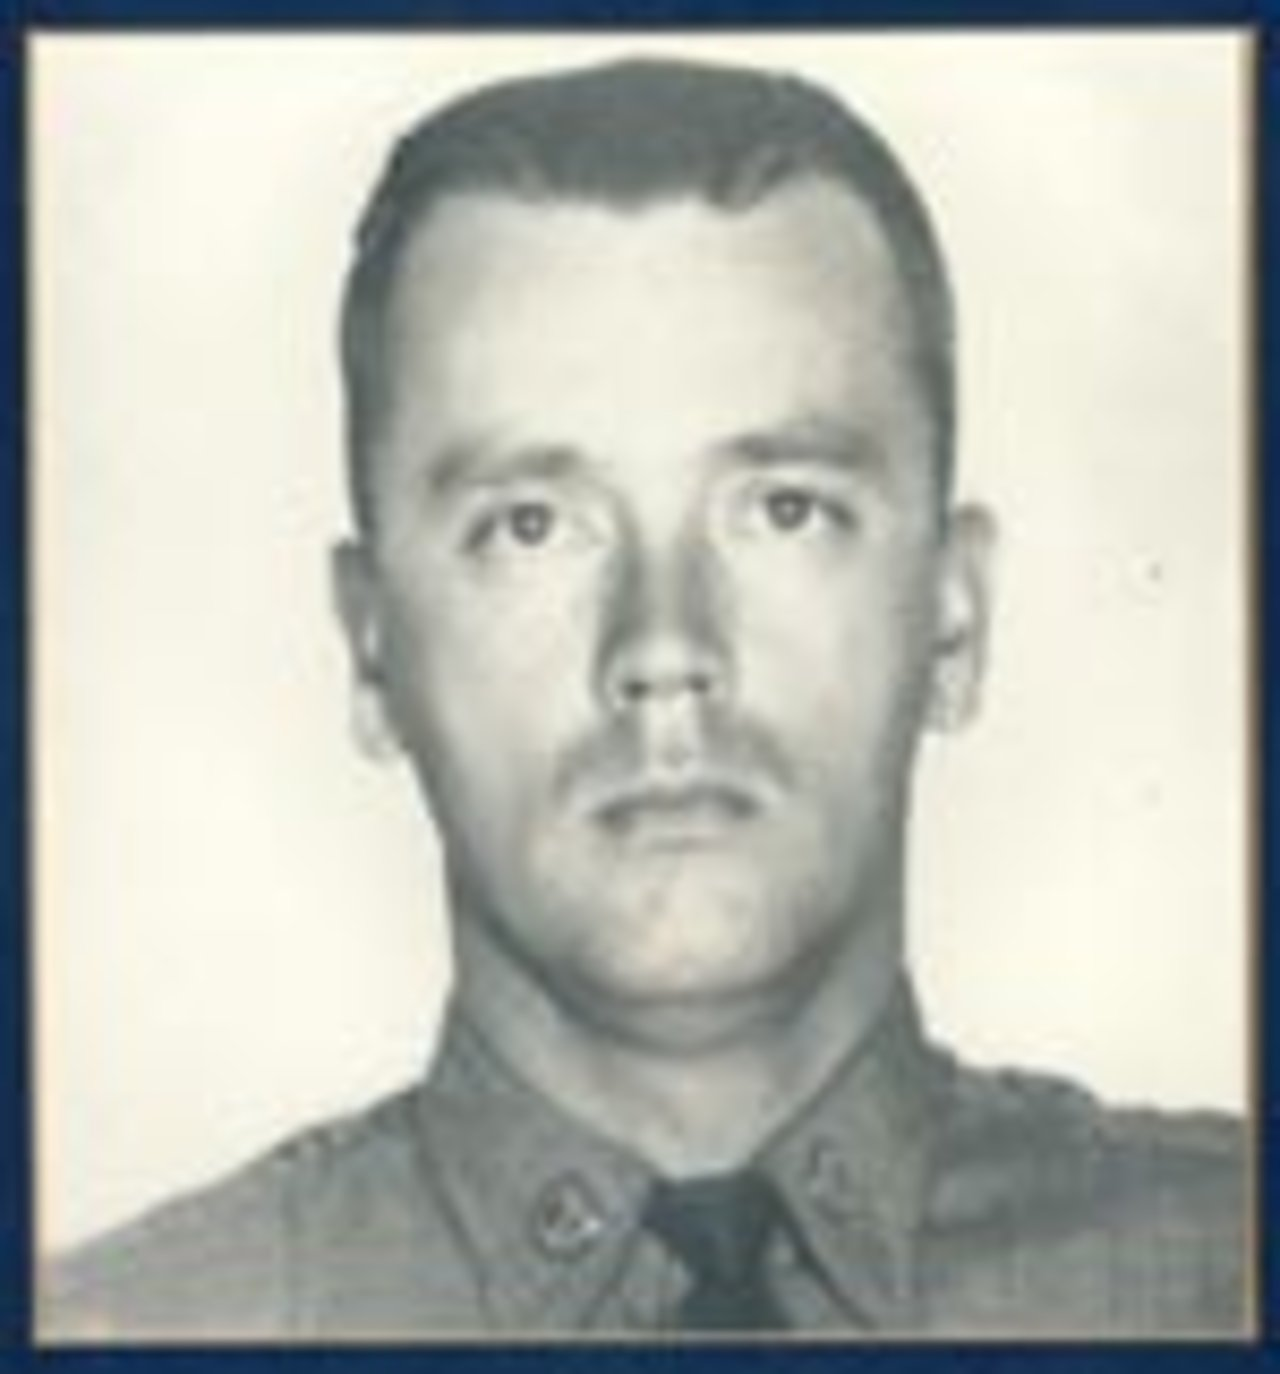 Trooper James D. Conrad, age 30, was killed instantly on November 11, 1966 when a tractor trailer made a left hand turn into the path of Trooper Conrad's vehicle on Route 15 near Bath. As a result of an investigation, the truck driver was charged with failing to yield the right-of-way.